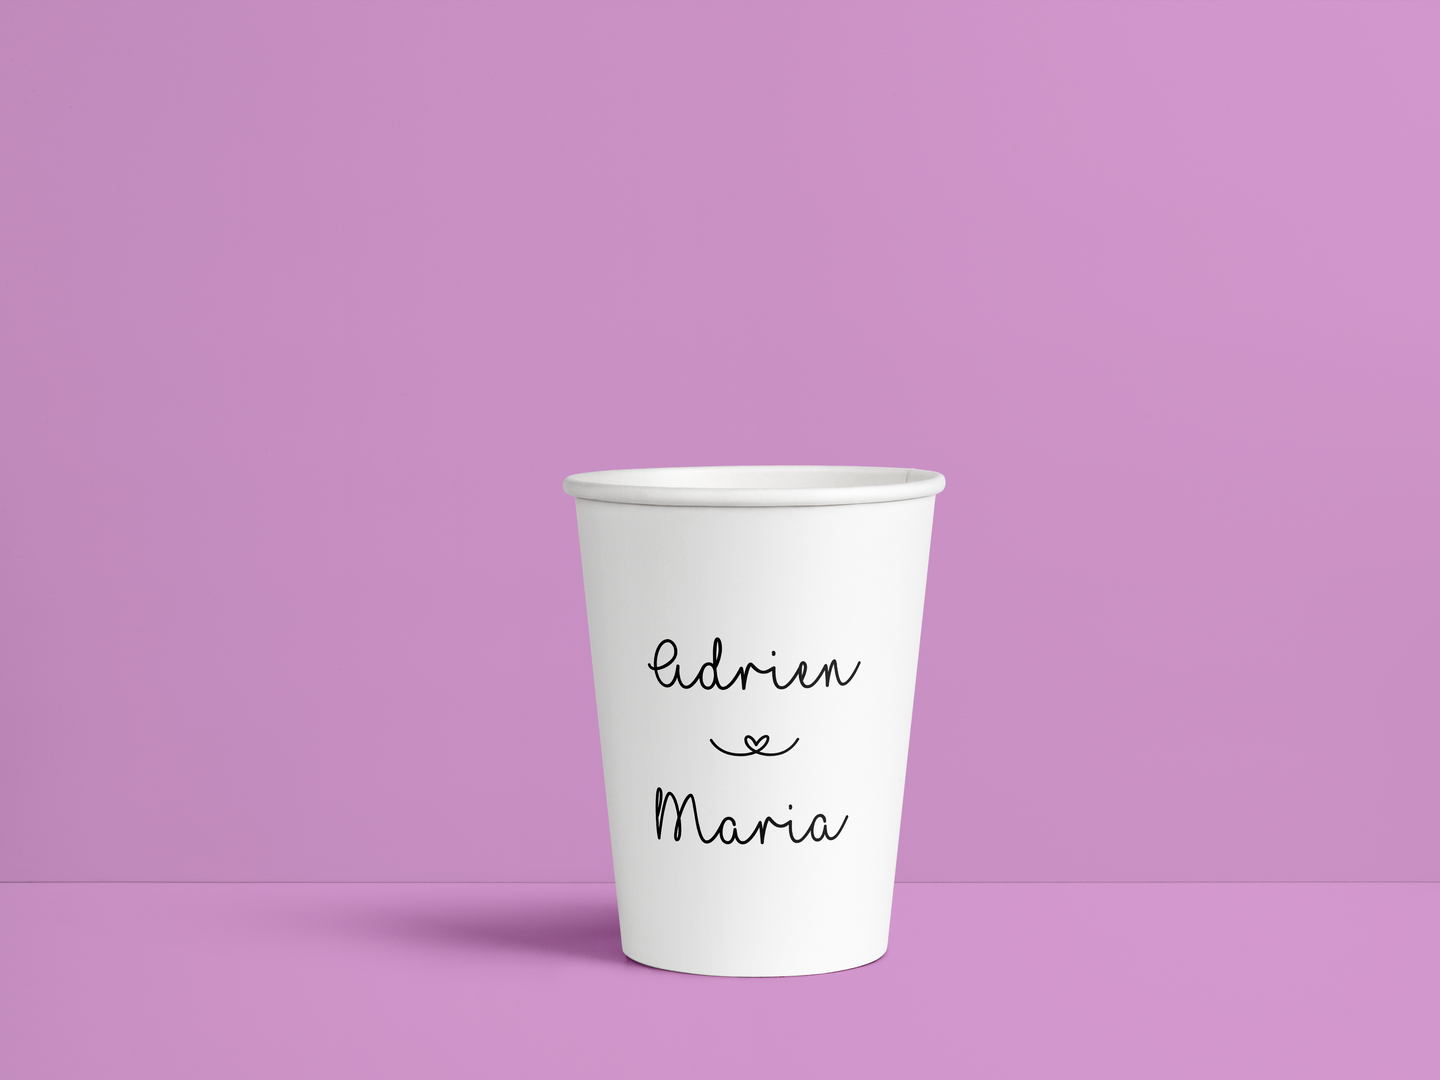 Mariage_Cups.png